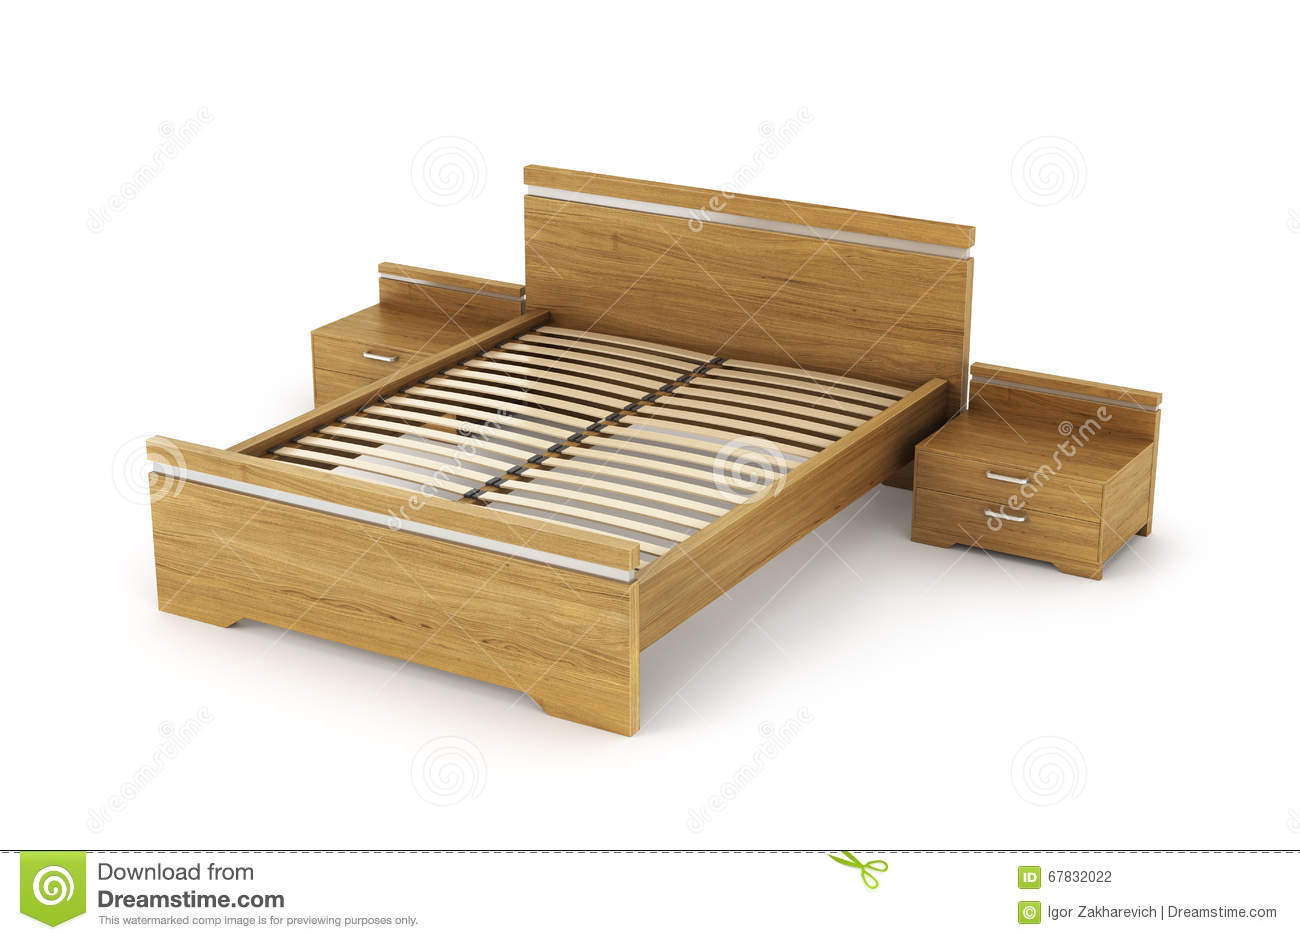 wooden bed with bedside tables